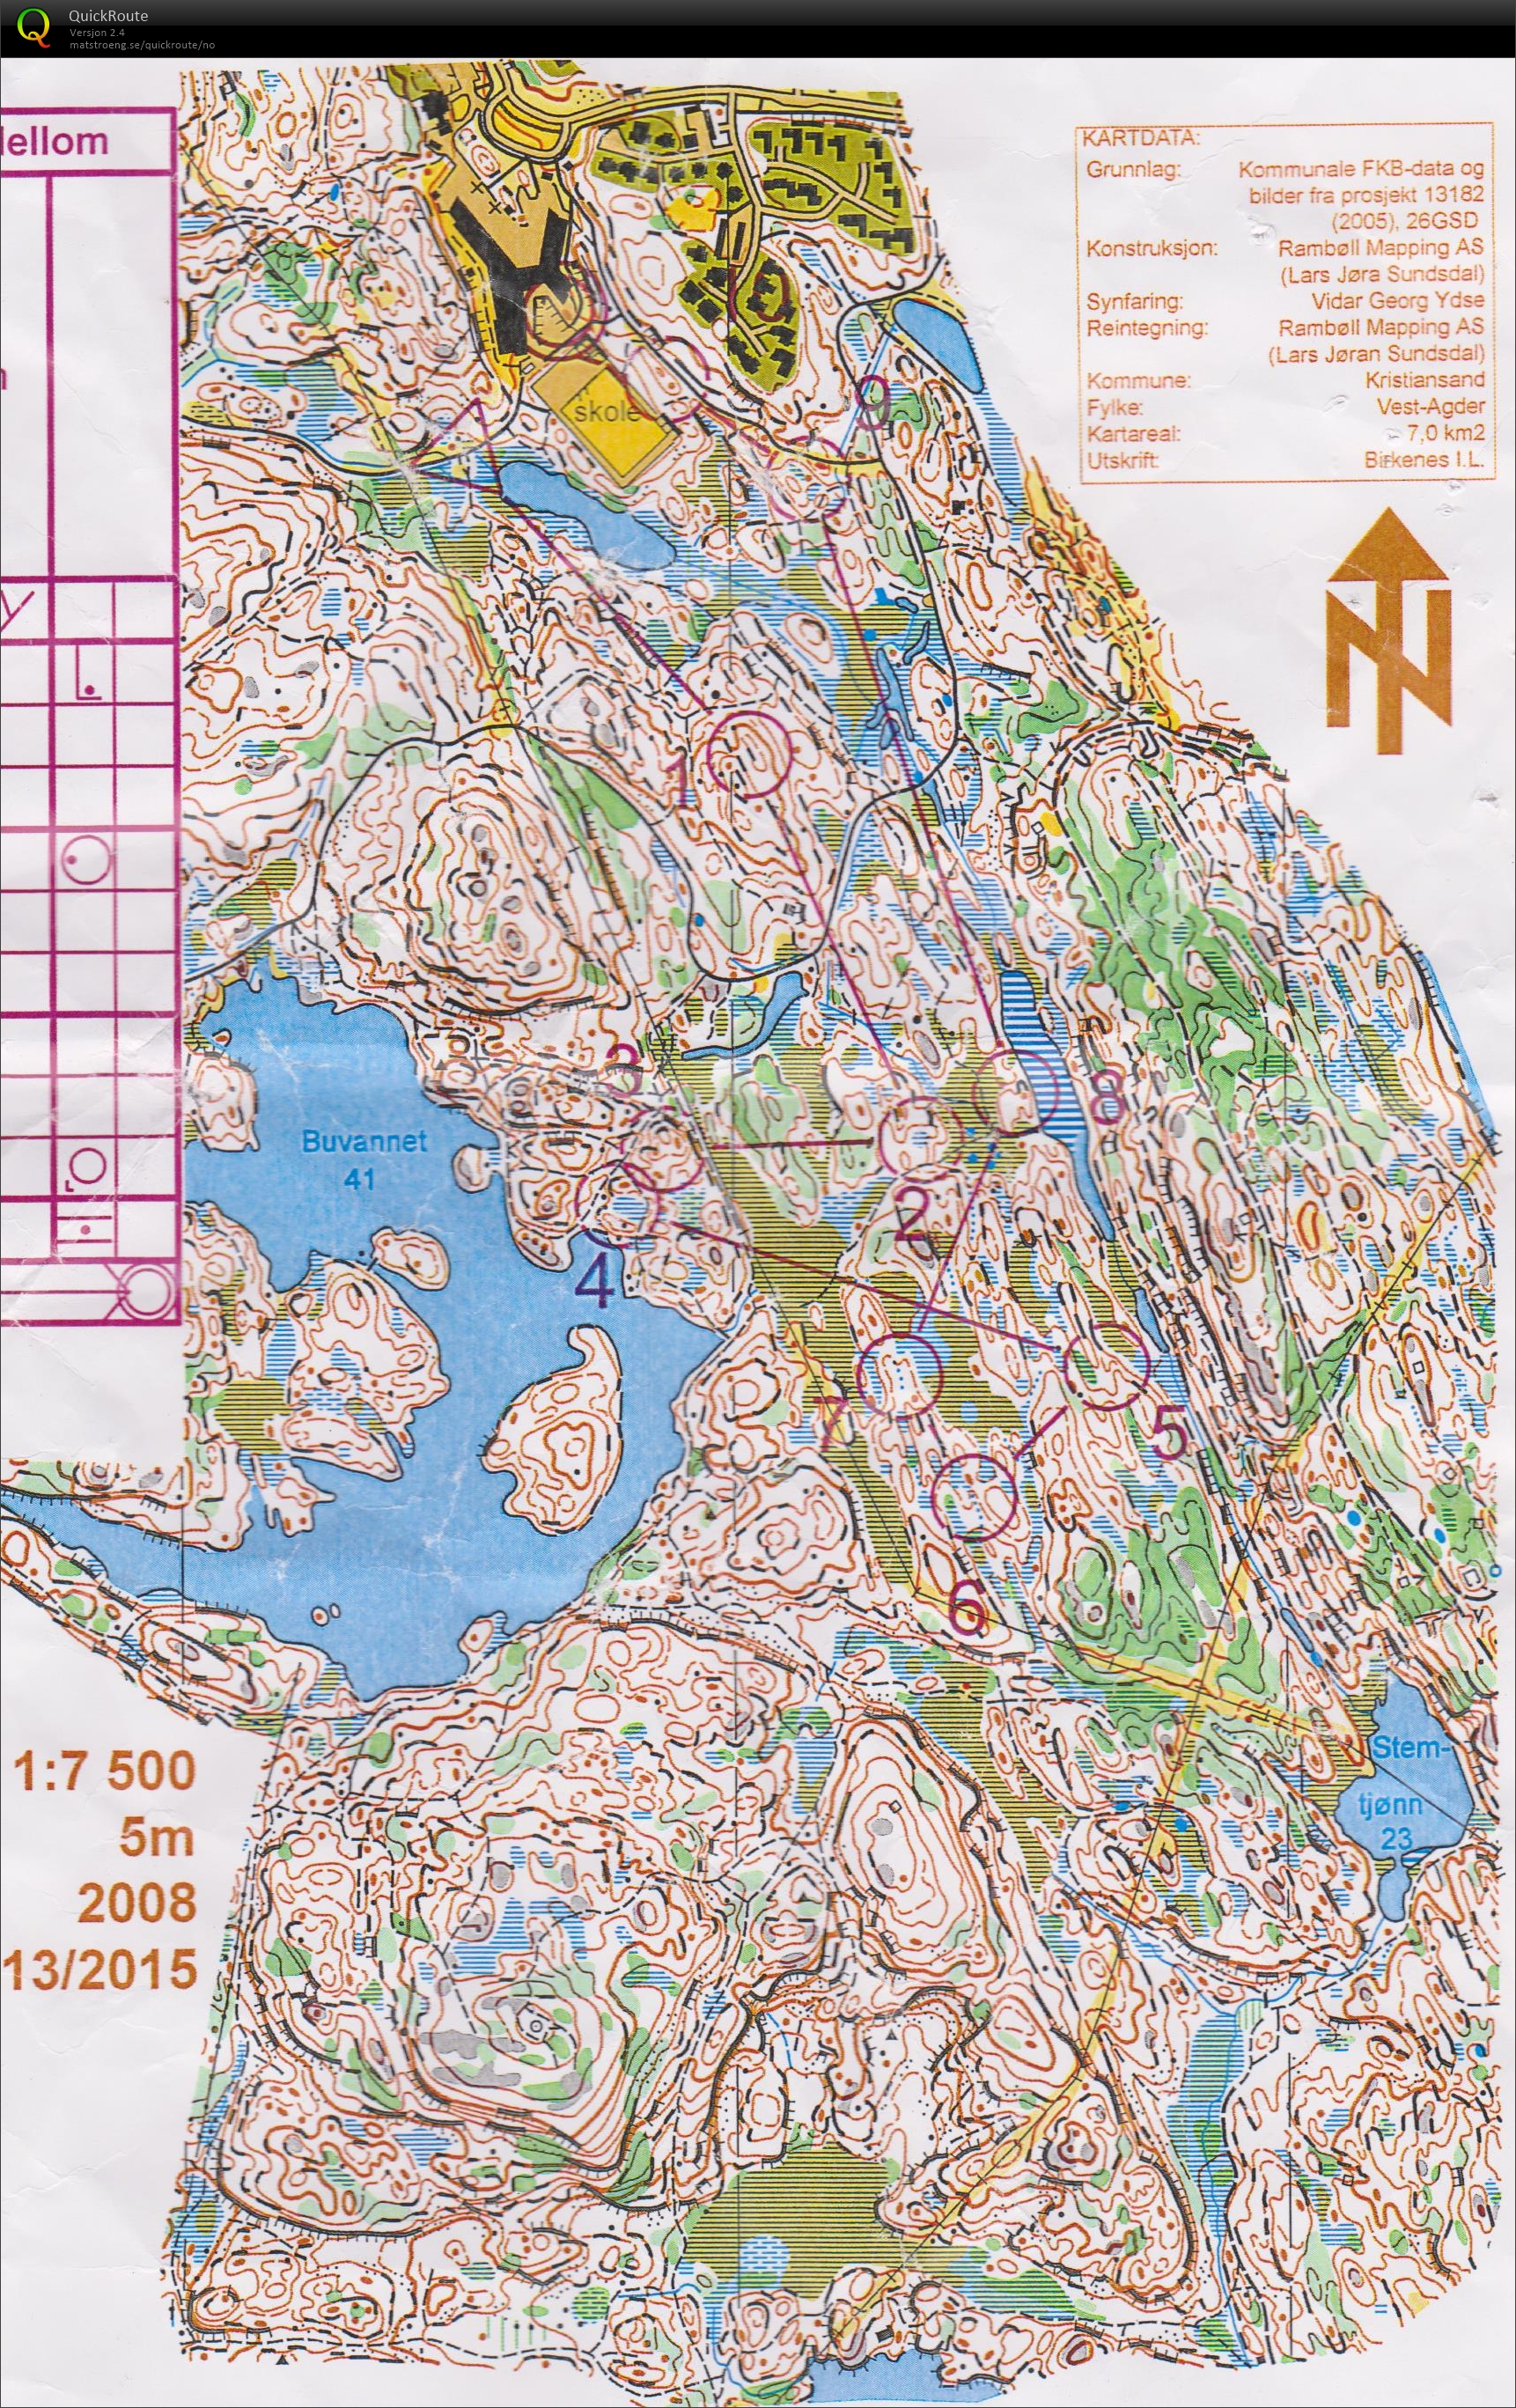 KOK 2dagers mellom March 21st 2015 Orienteering Map from Marius